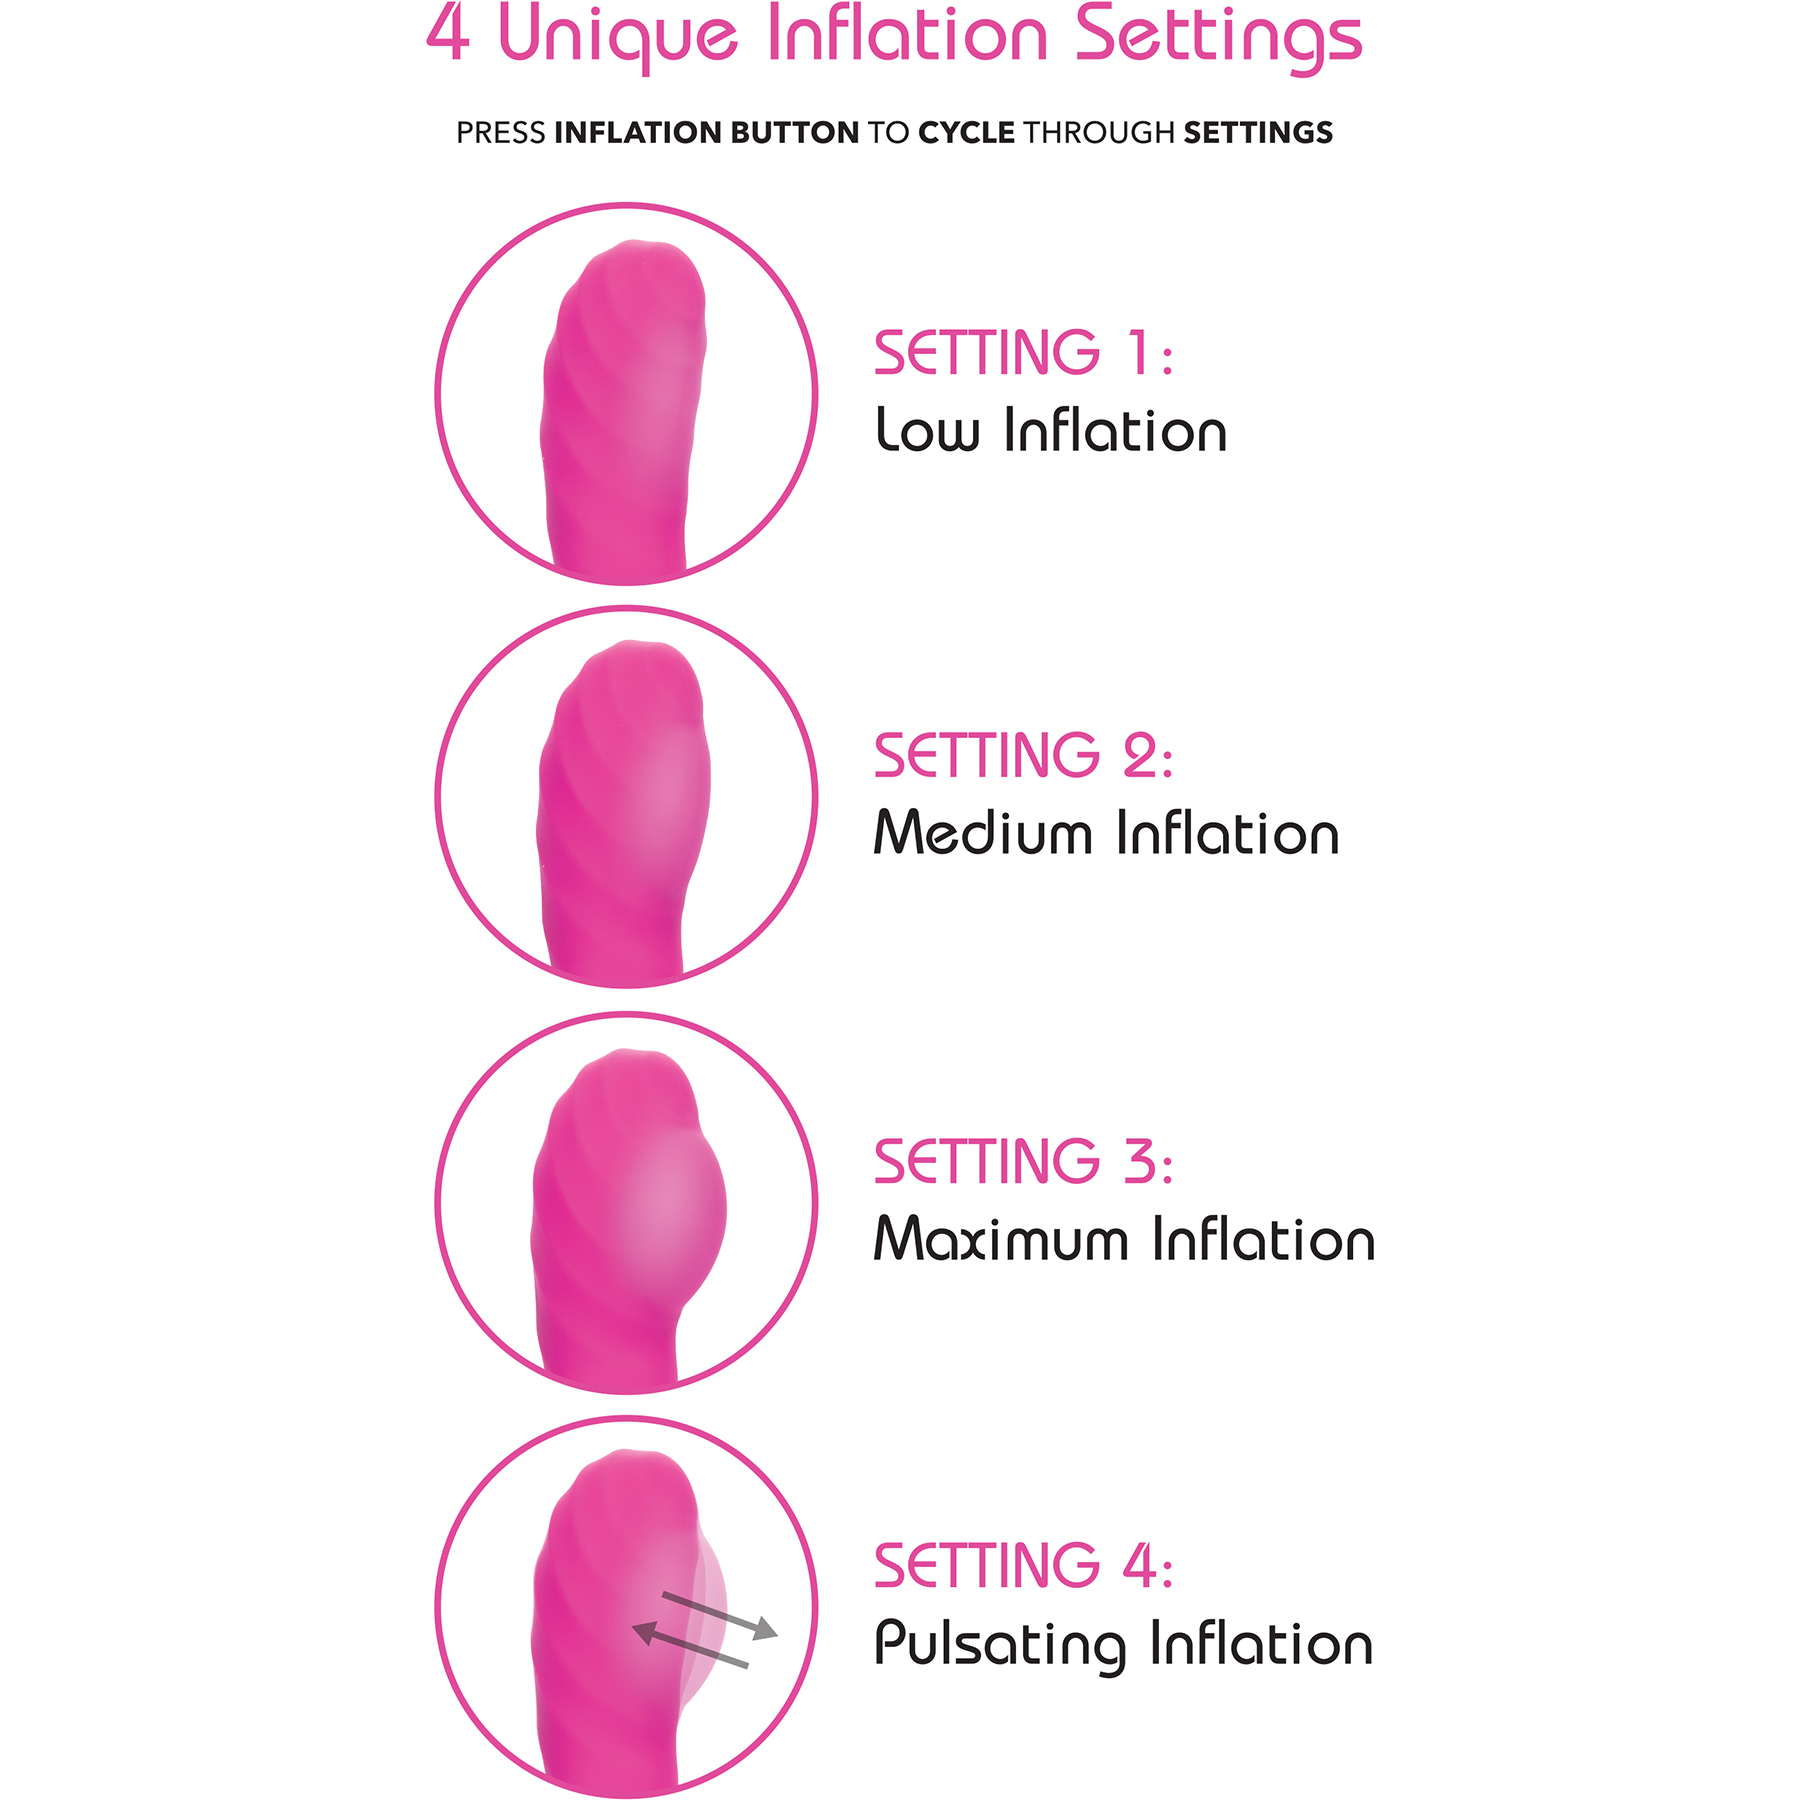 Insatiable G Inflatable G-Wand Silicone Rechargeable G-Spot Vibrator - Inflation Settings Graphic